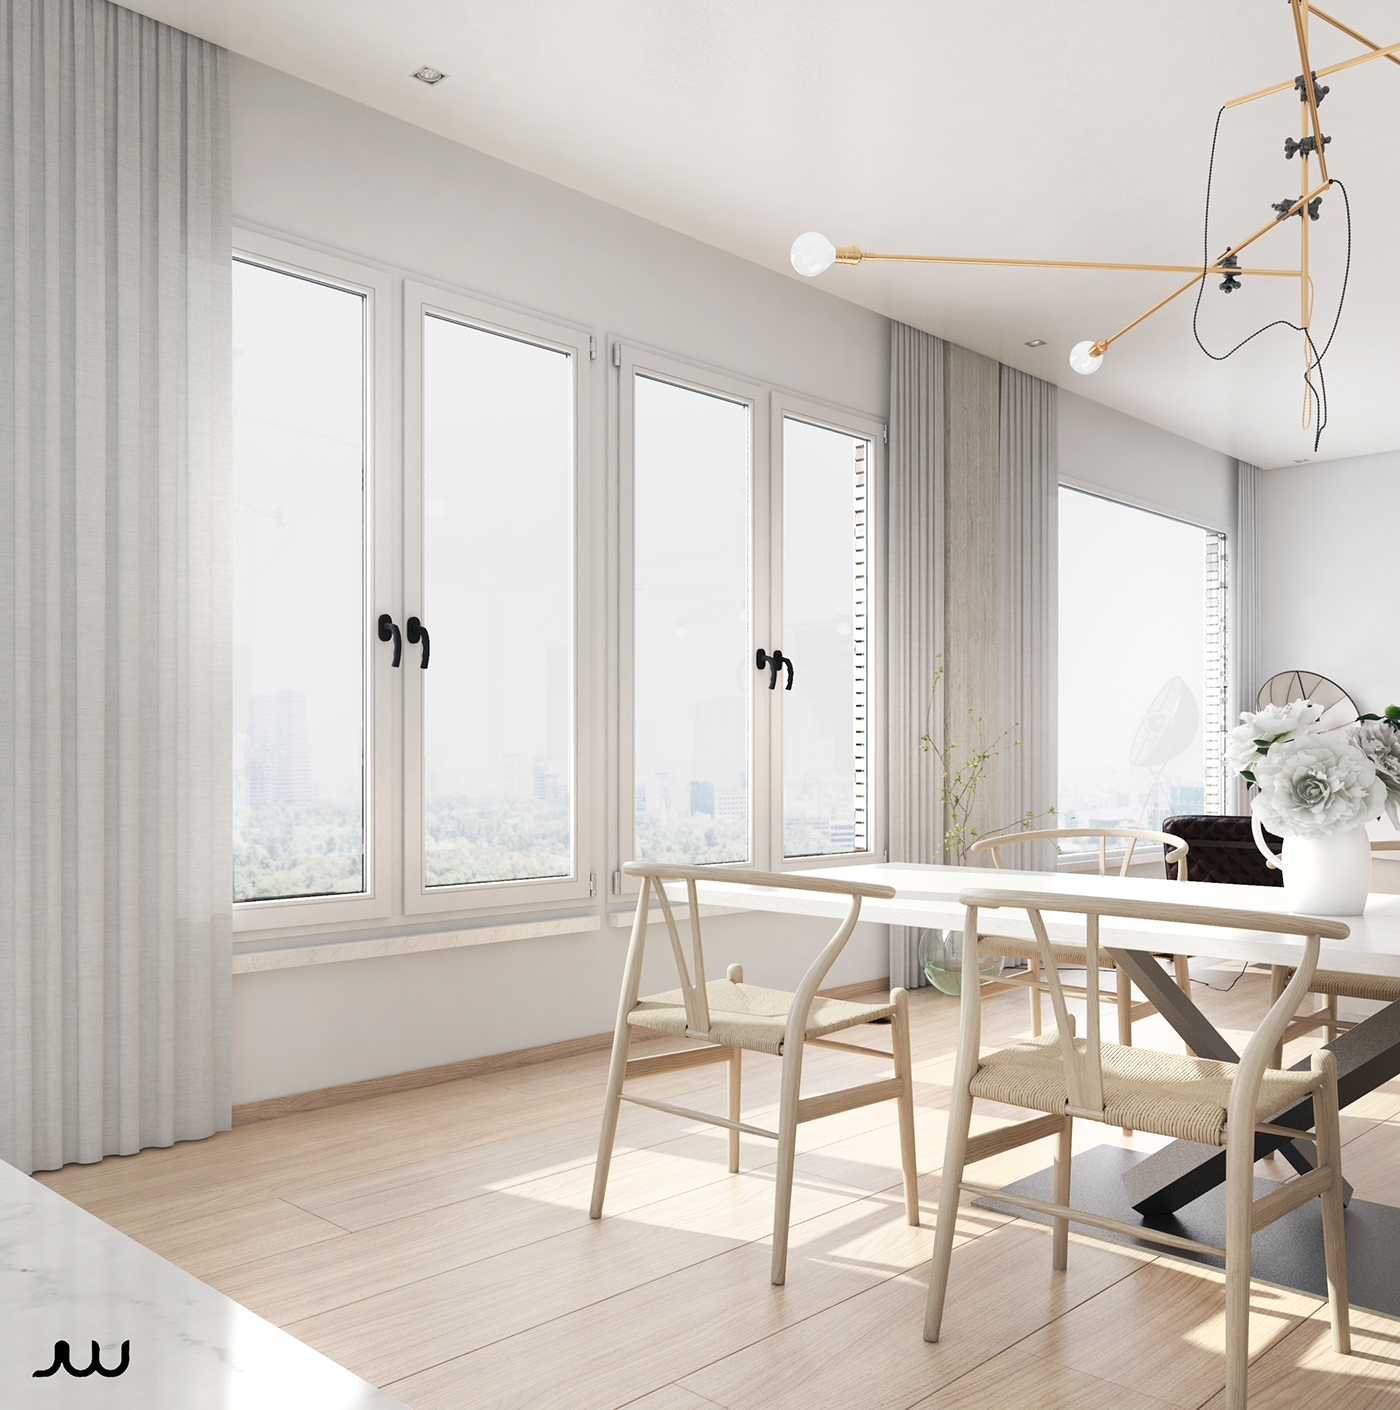 Central Park Apartments New York: New York Apartment (CGI) On Behance